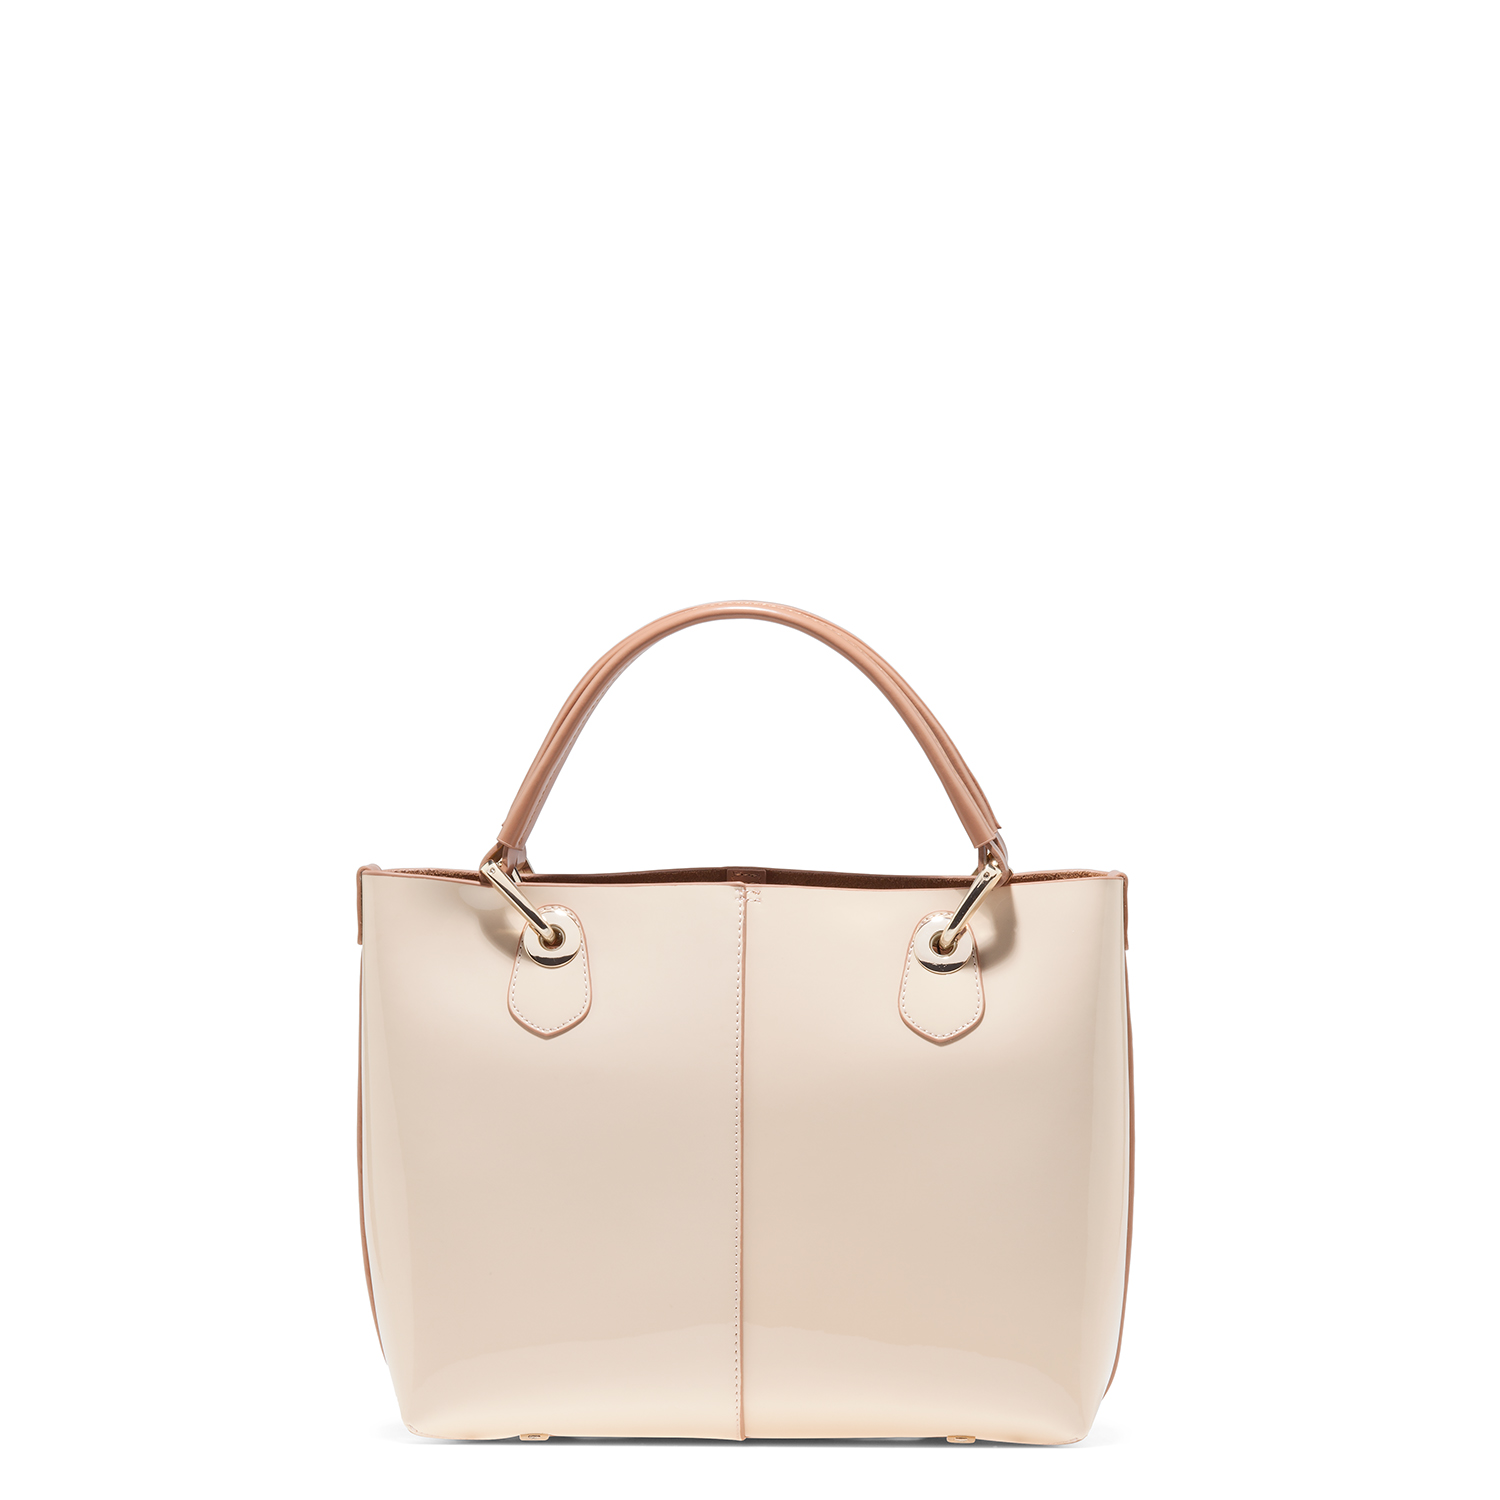 Women's bag CARLO PAZOLINI PS-N2635-19